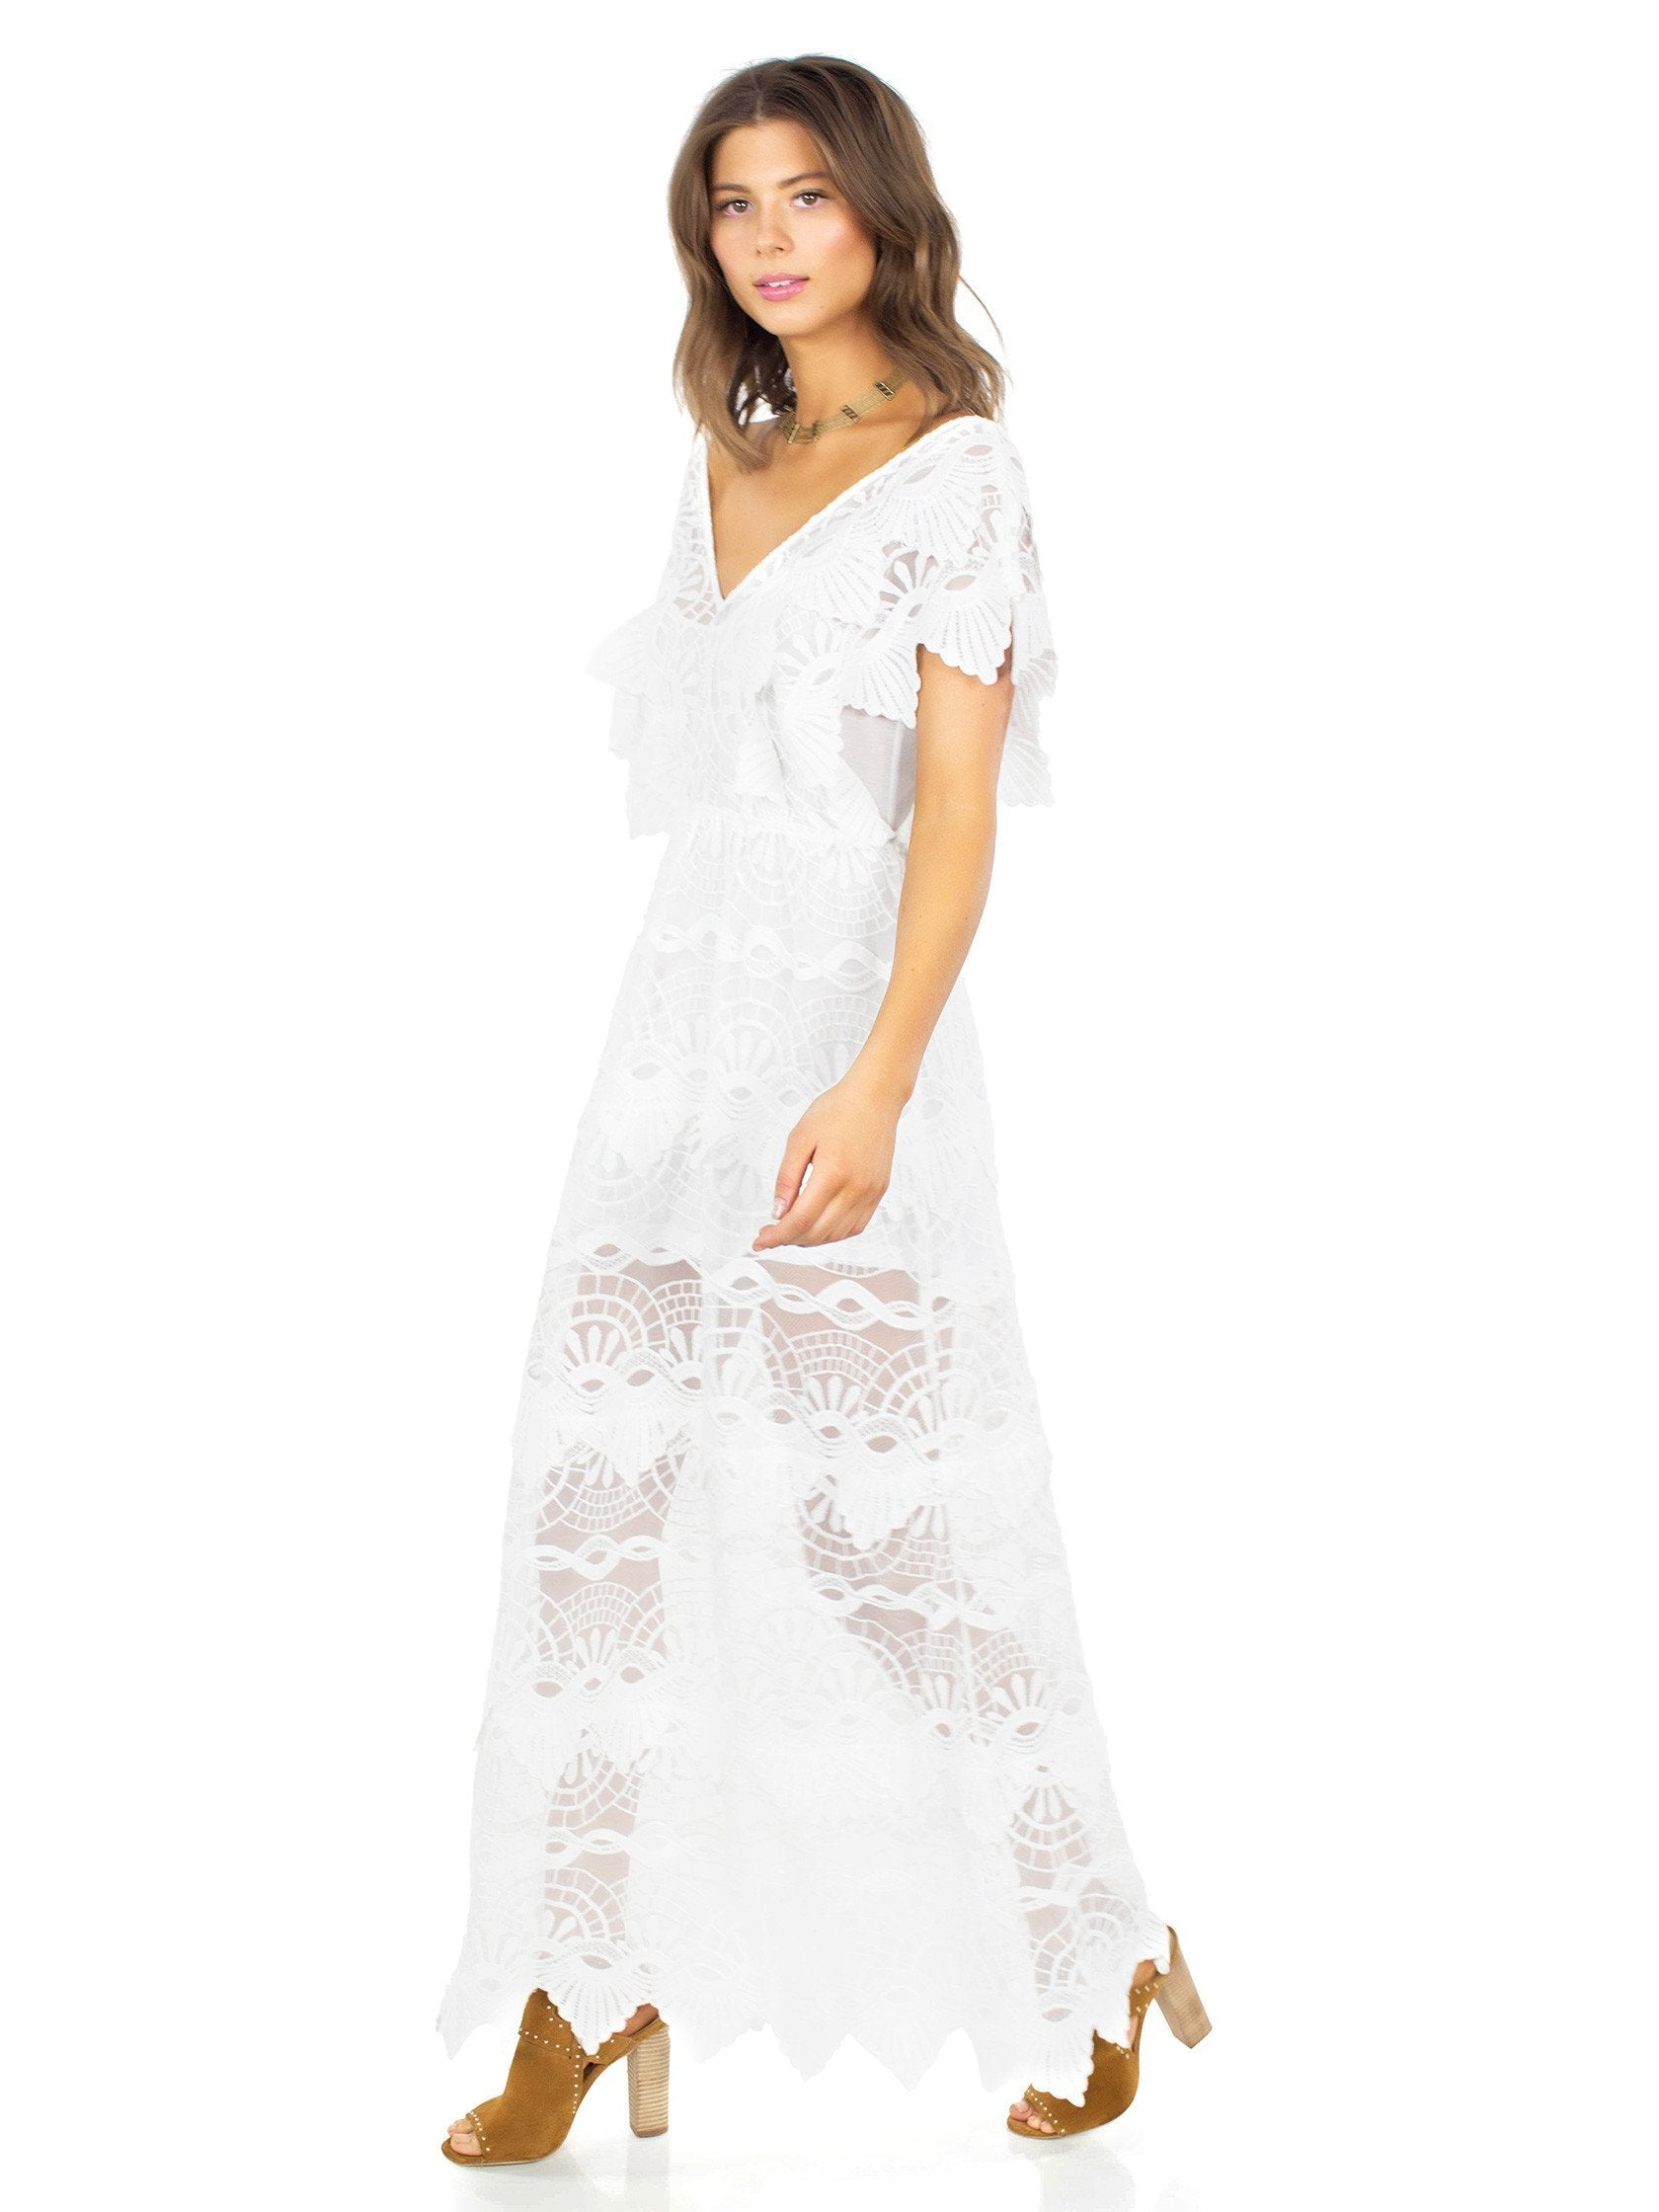 Woman wearing a dress rental from Nightcap Clothing called Mayan Lace Gown